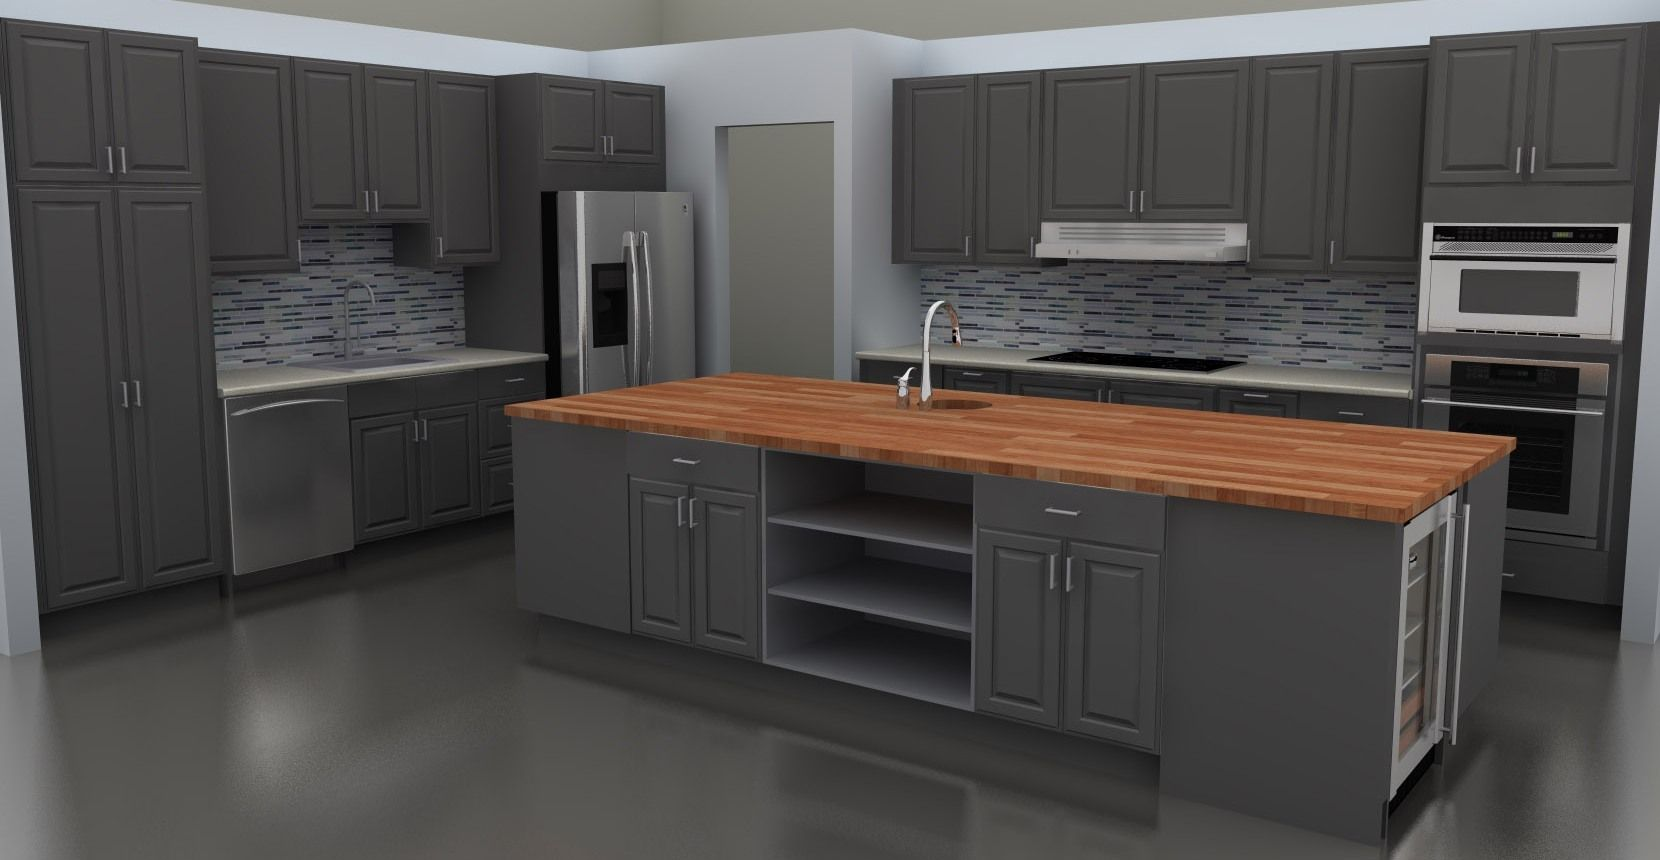 The Decent Styles Of The Retro Ikea Kitchen Cabinets Gray Iovodesign Can We View At Many Sides